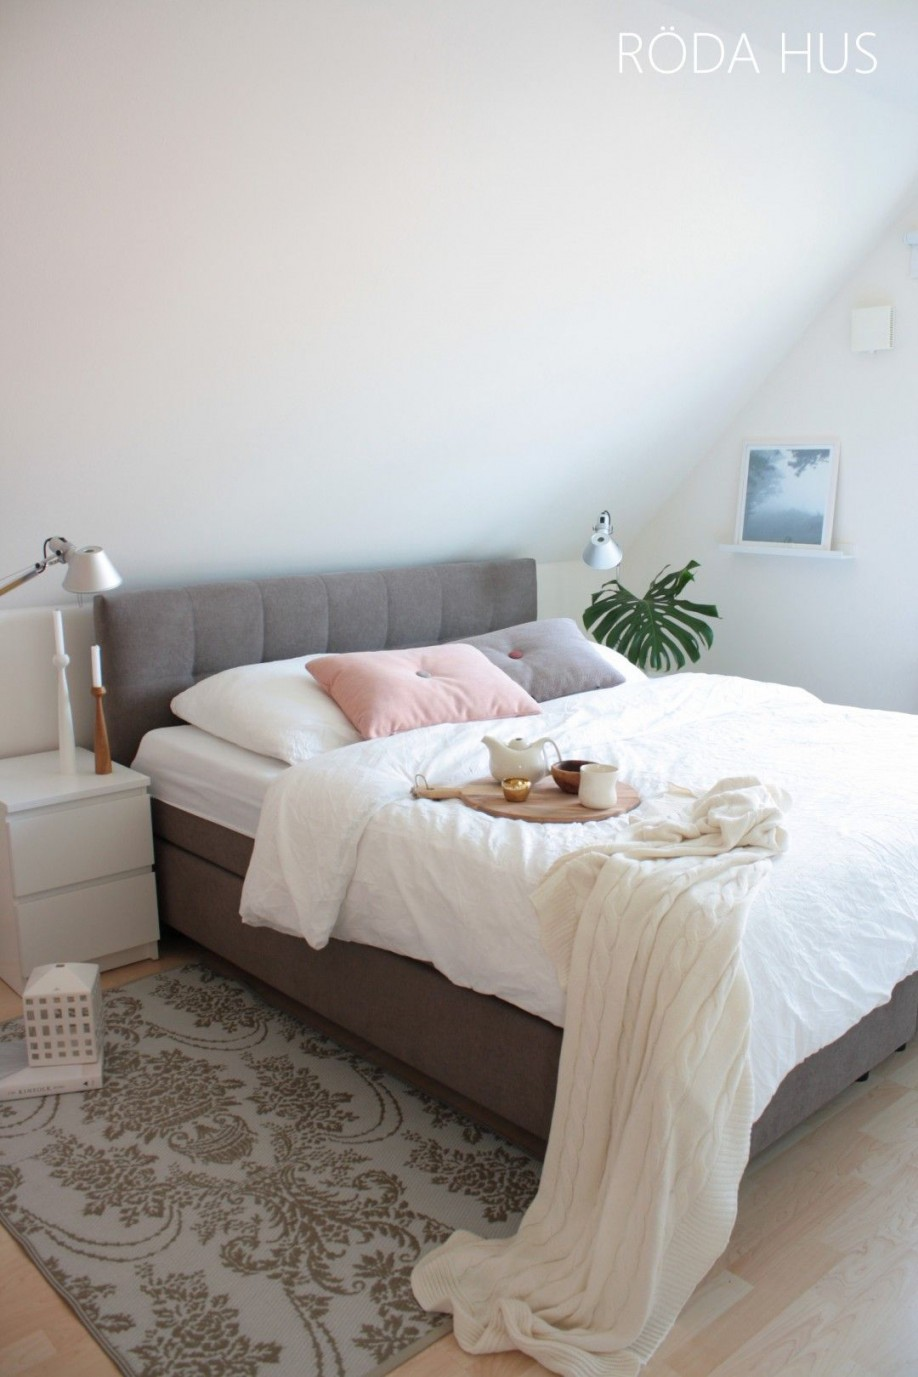 Schlafzimmer Boxspringbett Boxsping Bed Bedroom  Future von Schlafzimmer Ideen Boxspringbett Bild